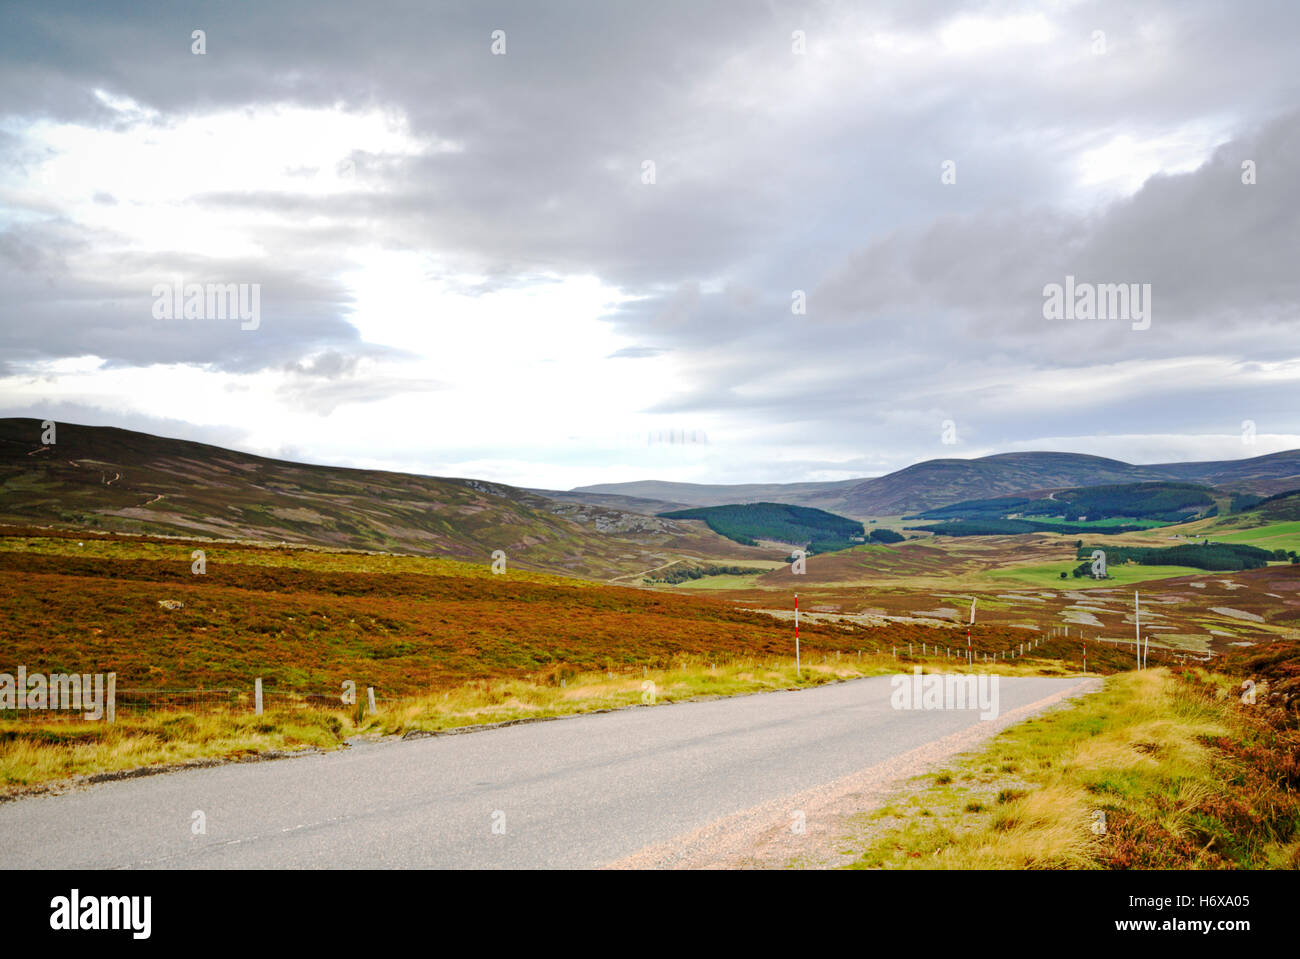 A view of the A939 Old Military Road running over moorland and the Grampian Mountains, Aberdeenshie, Scotland, United - Stock Image